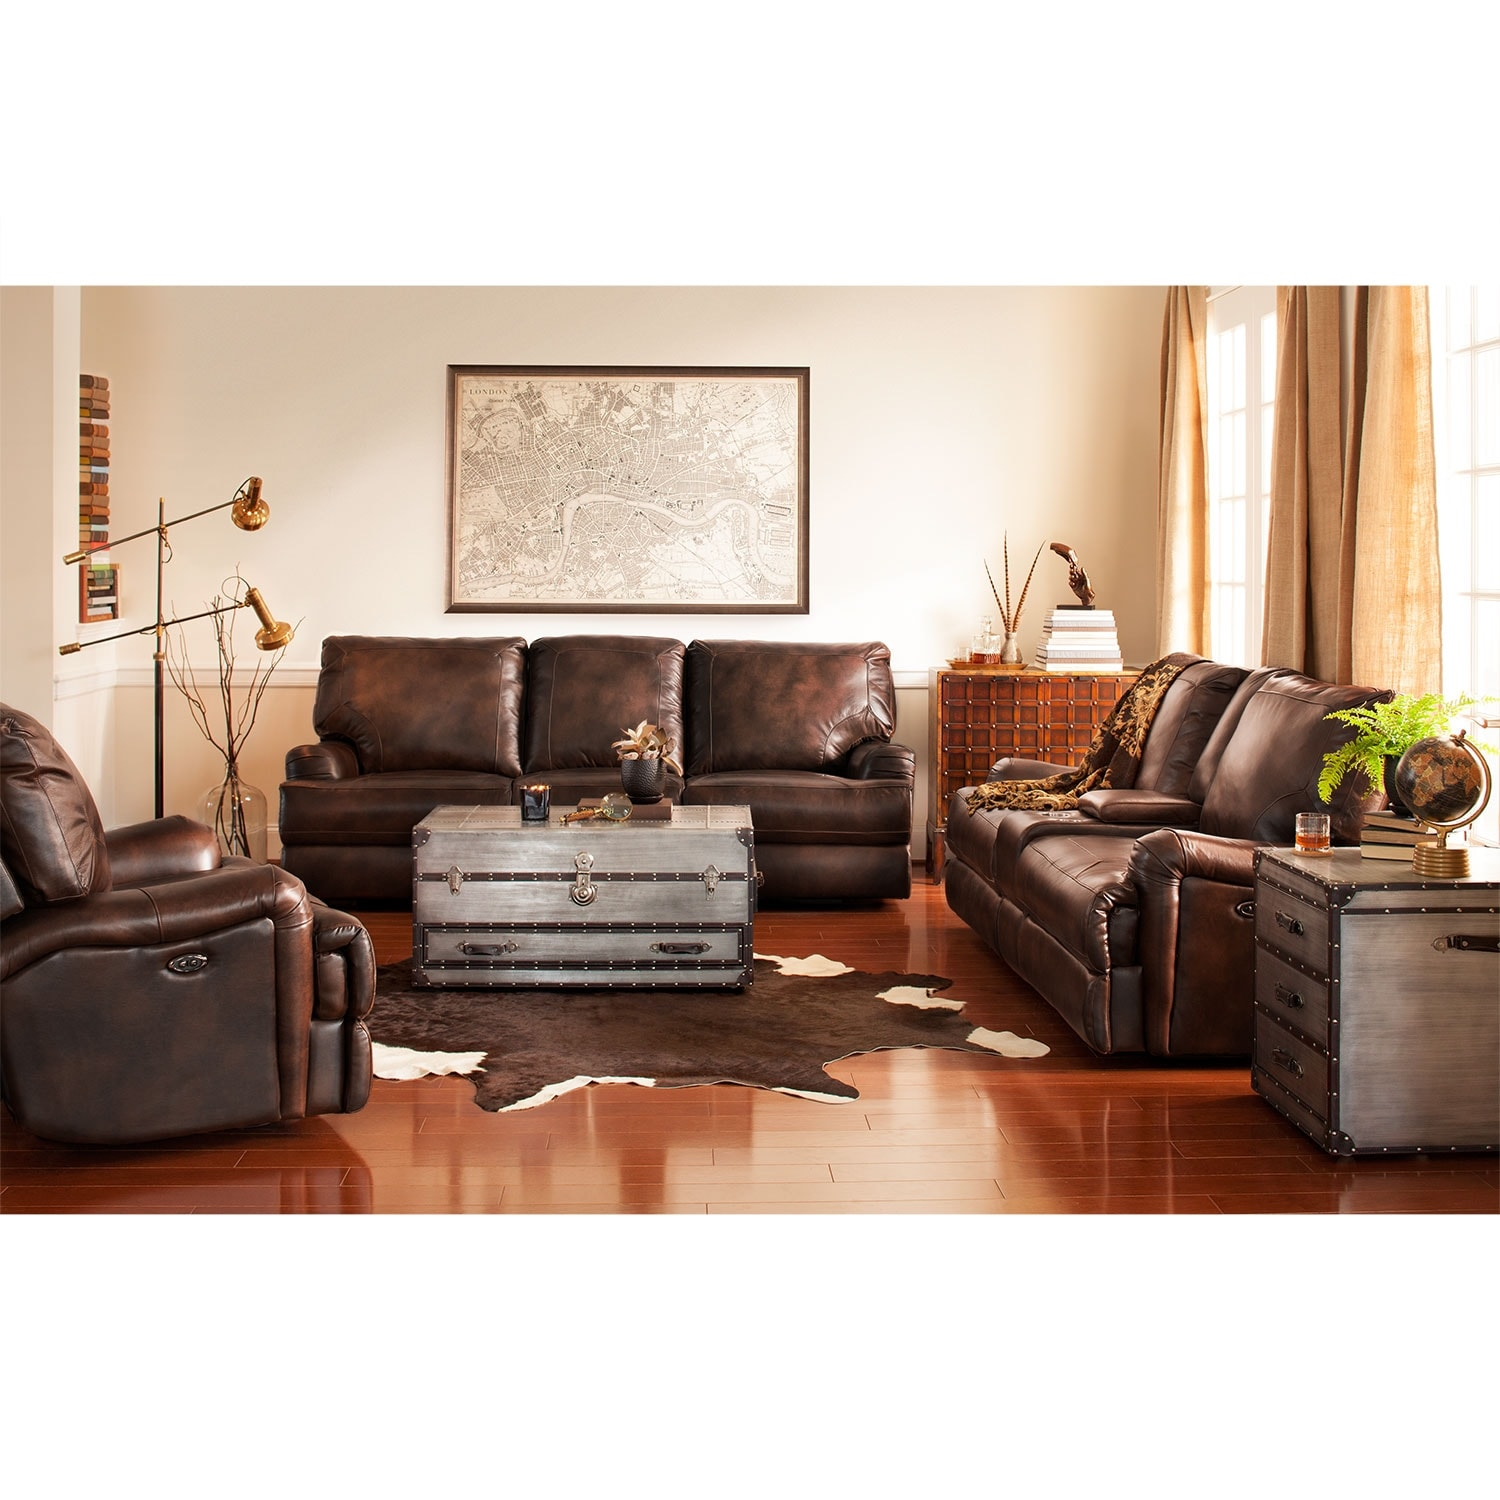 Living Room Furniture - Kingsway 3 Pc. Power Reclining Living Room